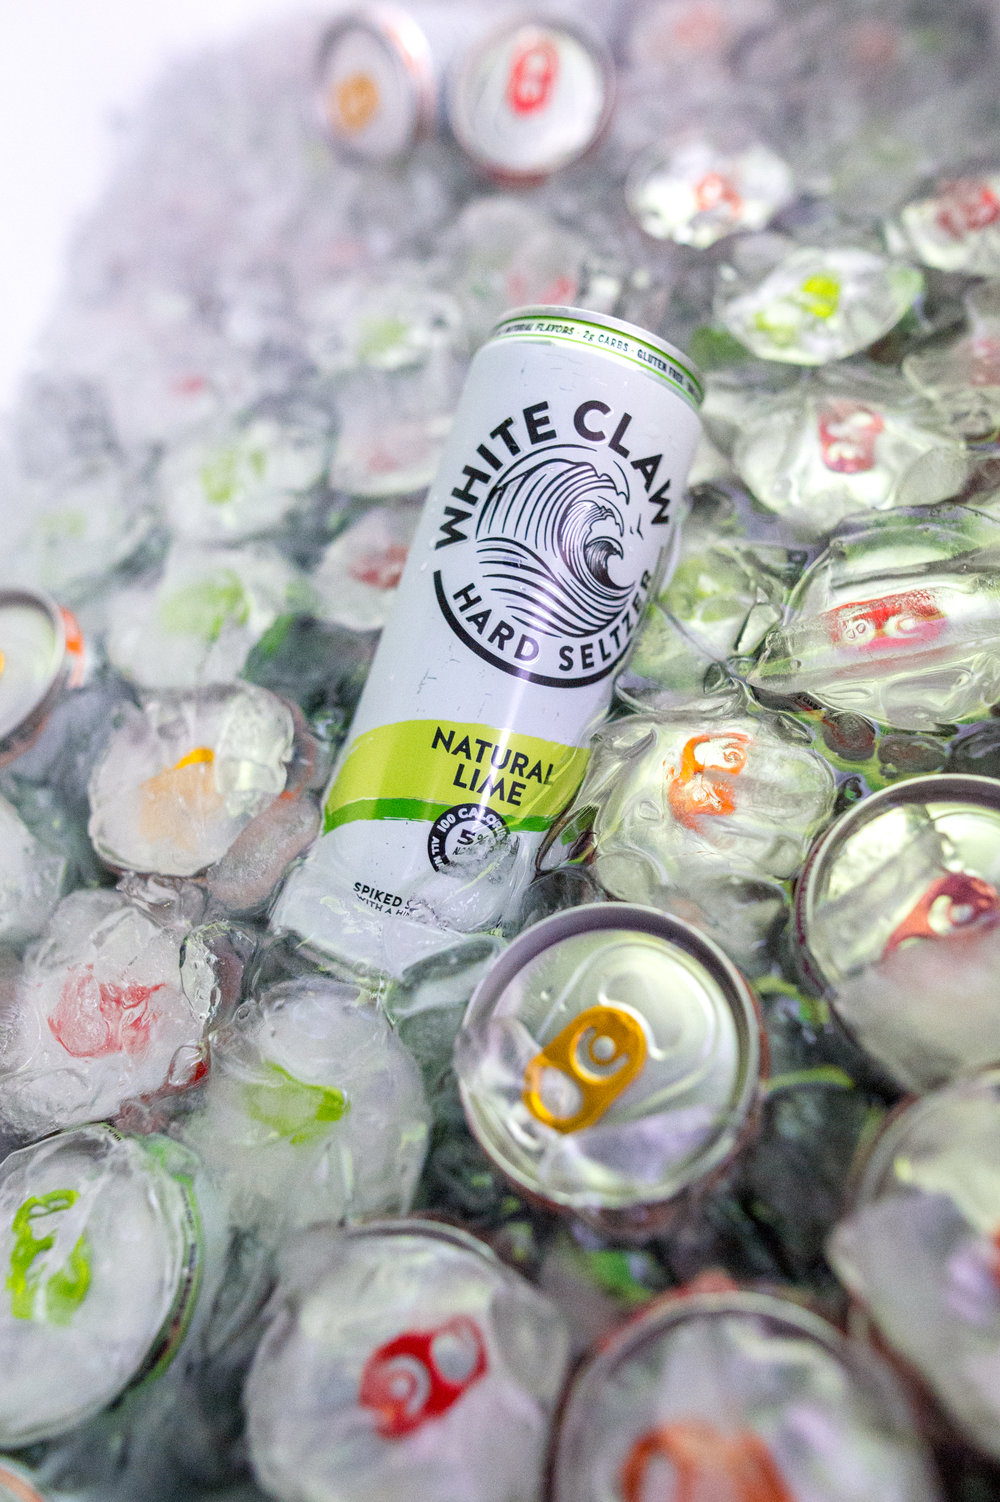 OHM-White Claw-Cincinnati Tennis Open-Top Selects-3935.jpg